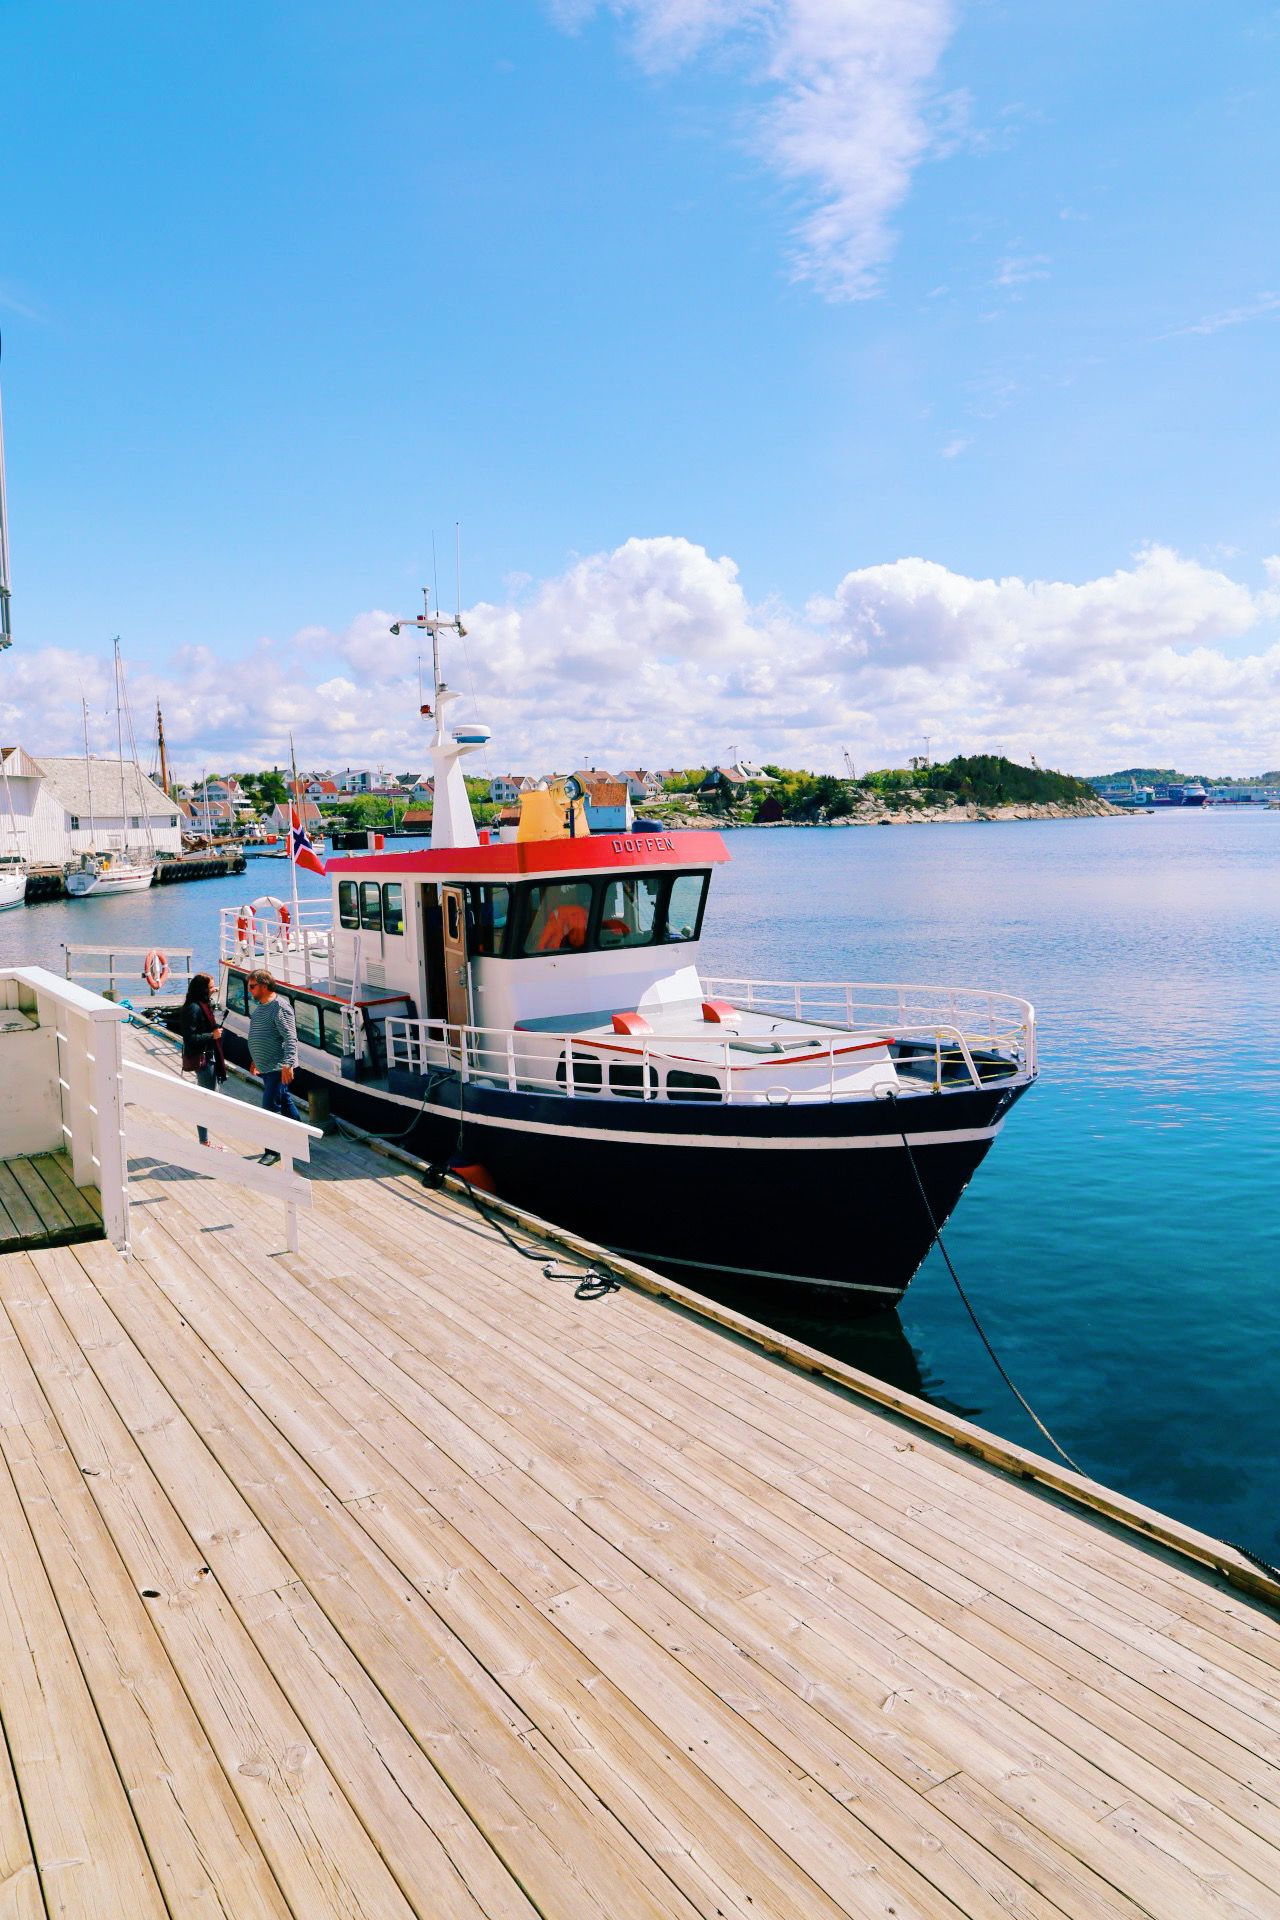 Photo Updates From Our 48 Hours In The Nordics Challenge! (14)